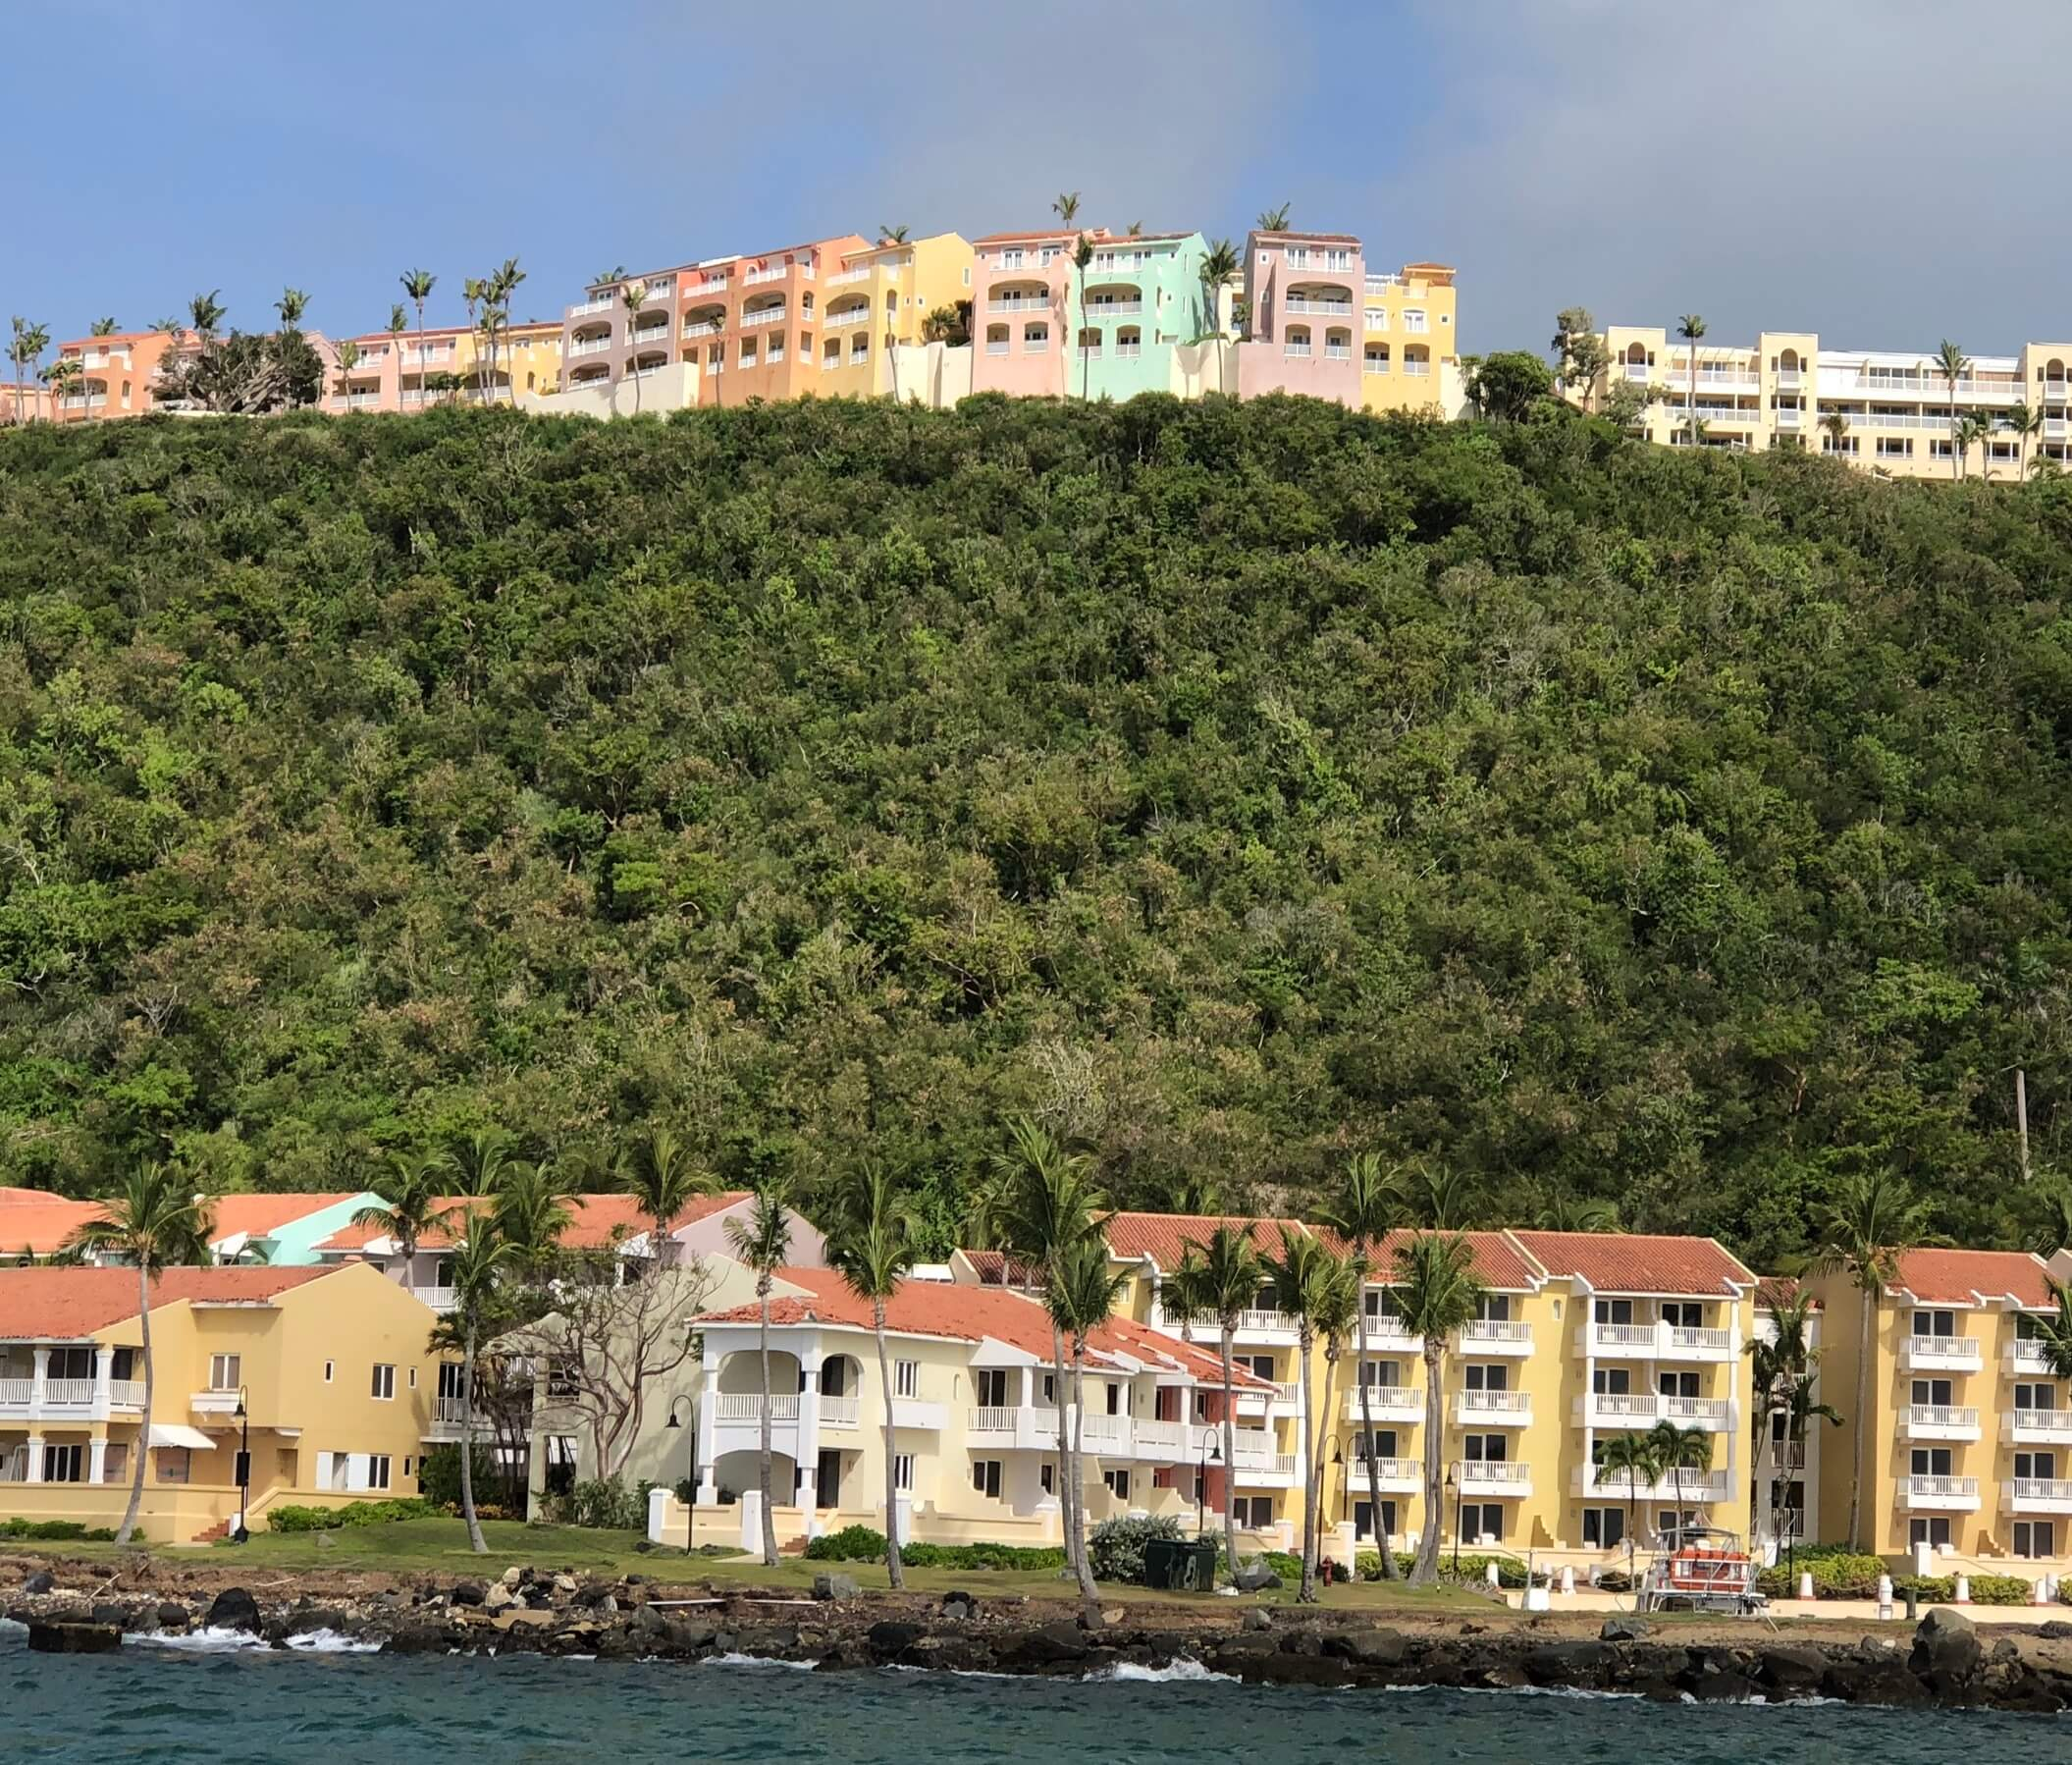 View of  La Casitas Village at El Conquistador, a Waldorf Astoria Resort from the water.